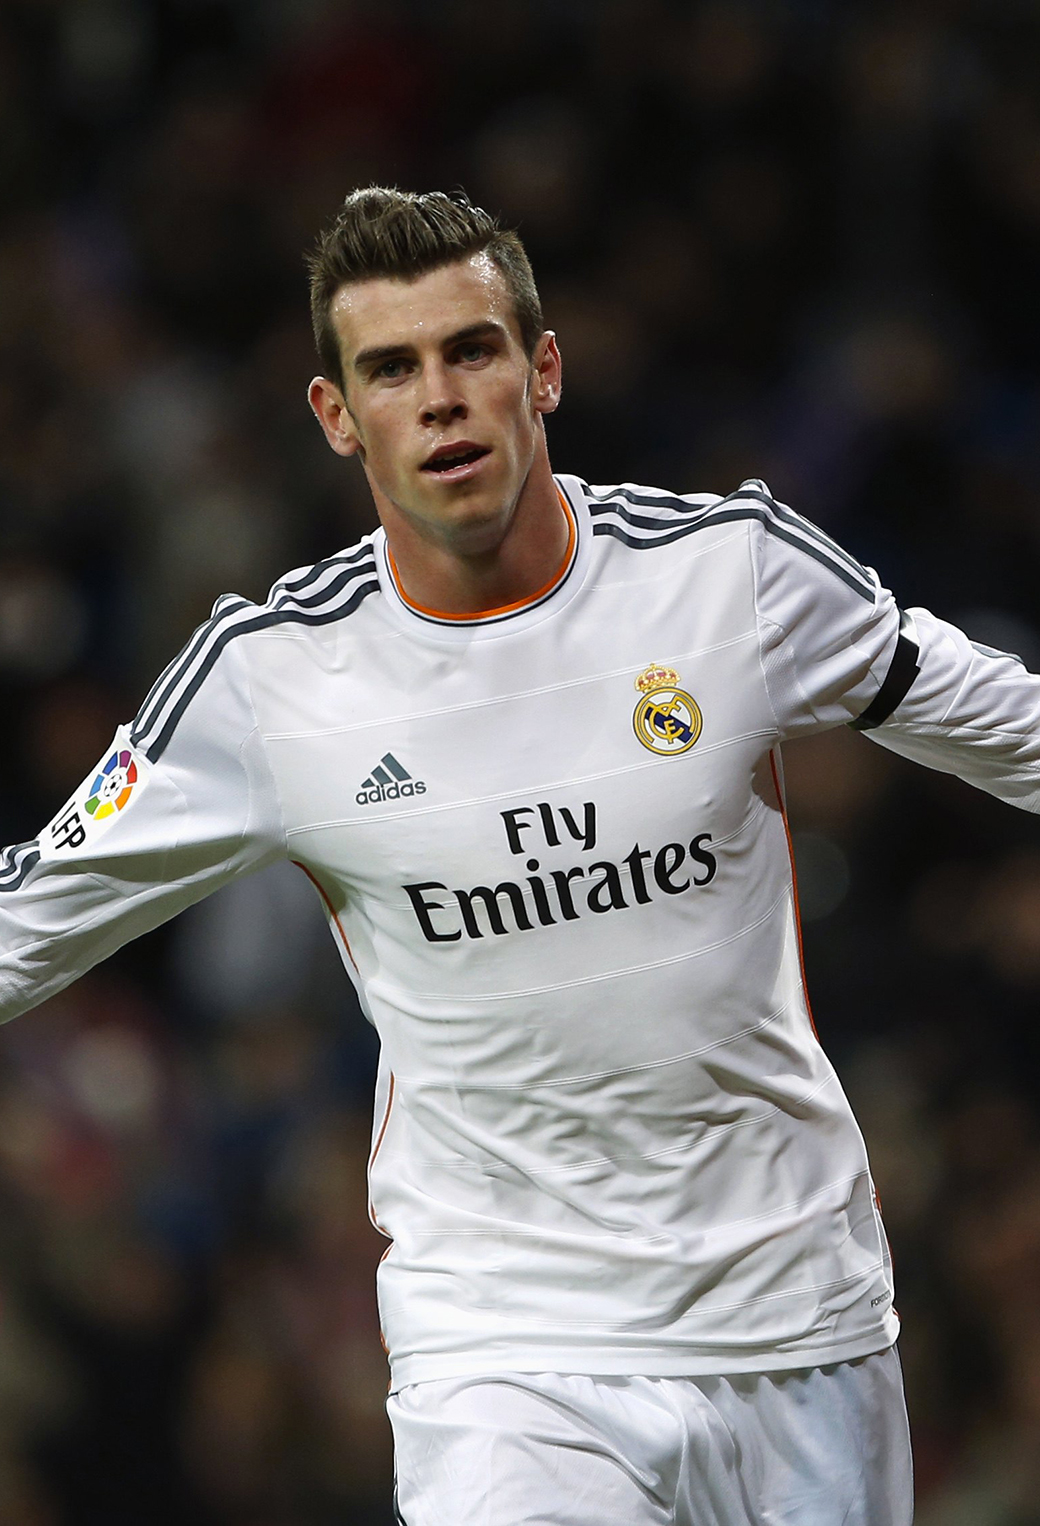 Gareth Bale Real Madrid 3Wallpapers Iphone Parallax Gareth Bale   Real Madrid